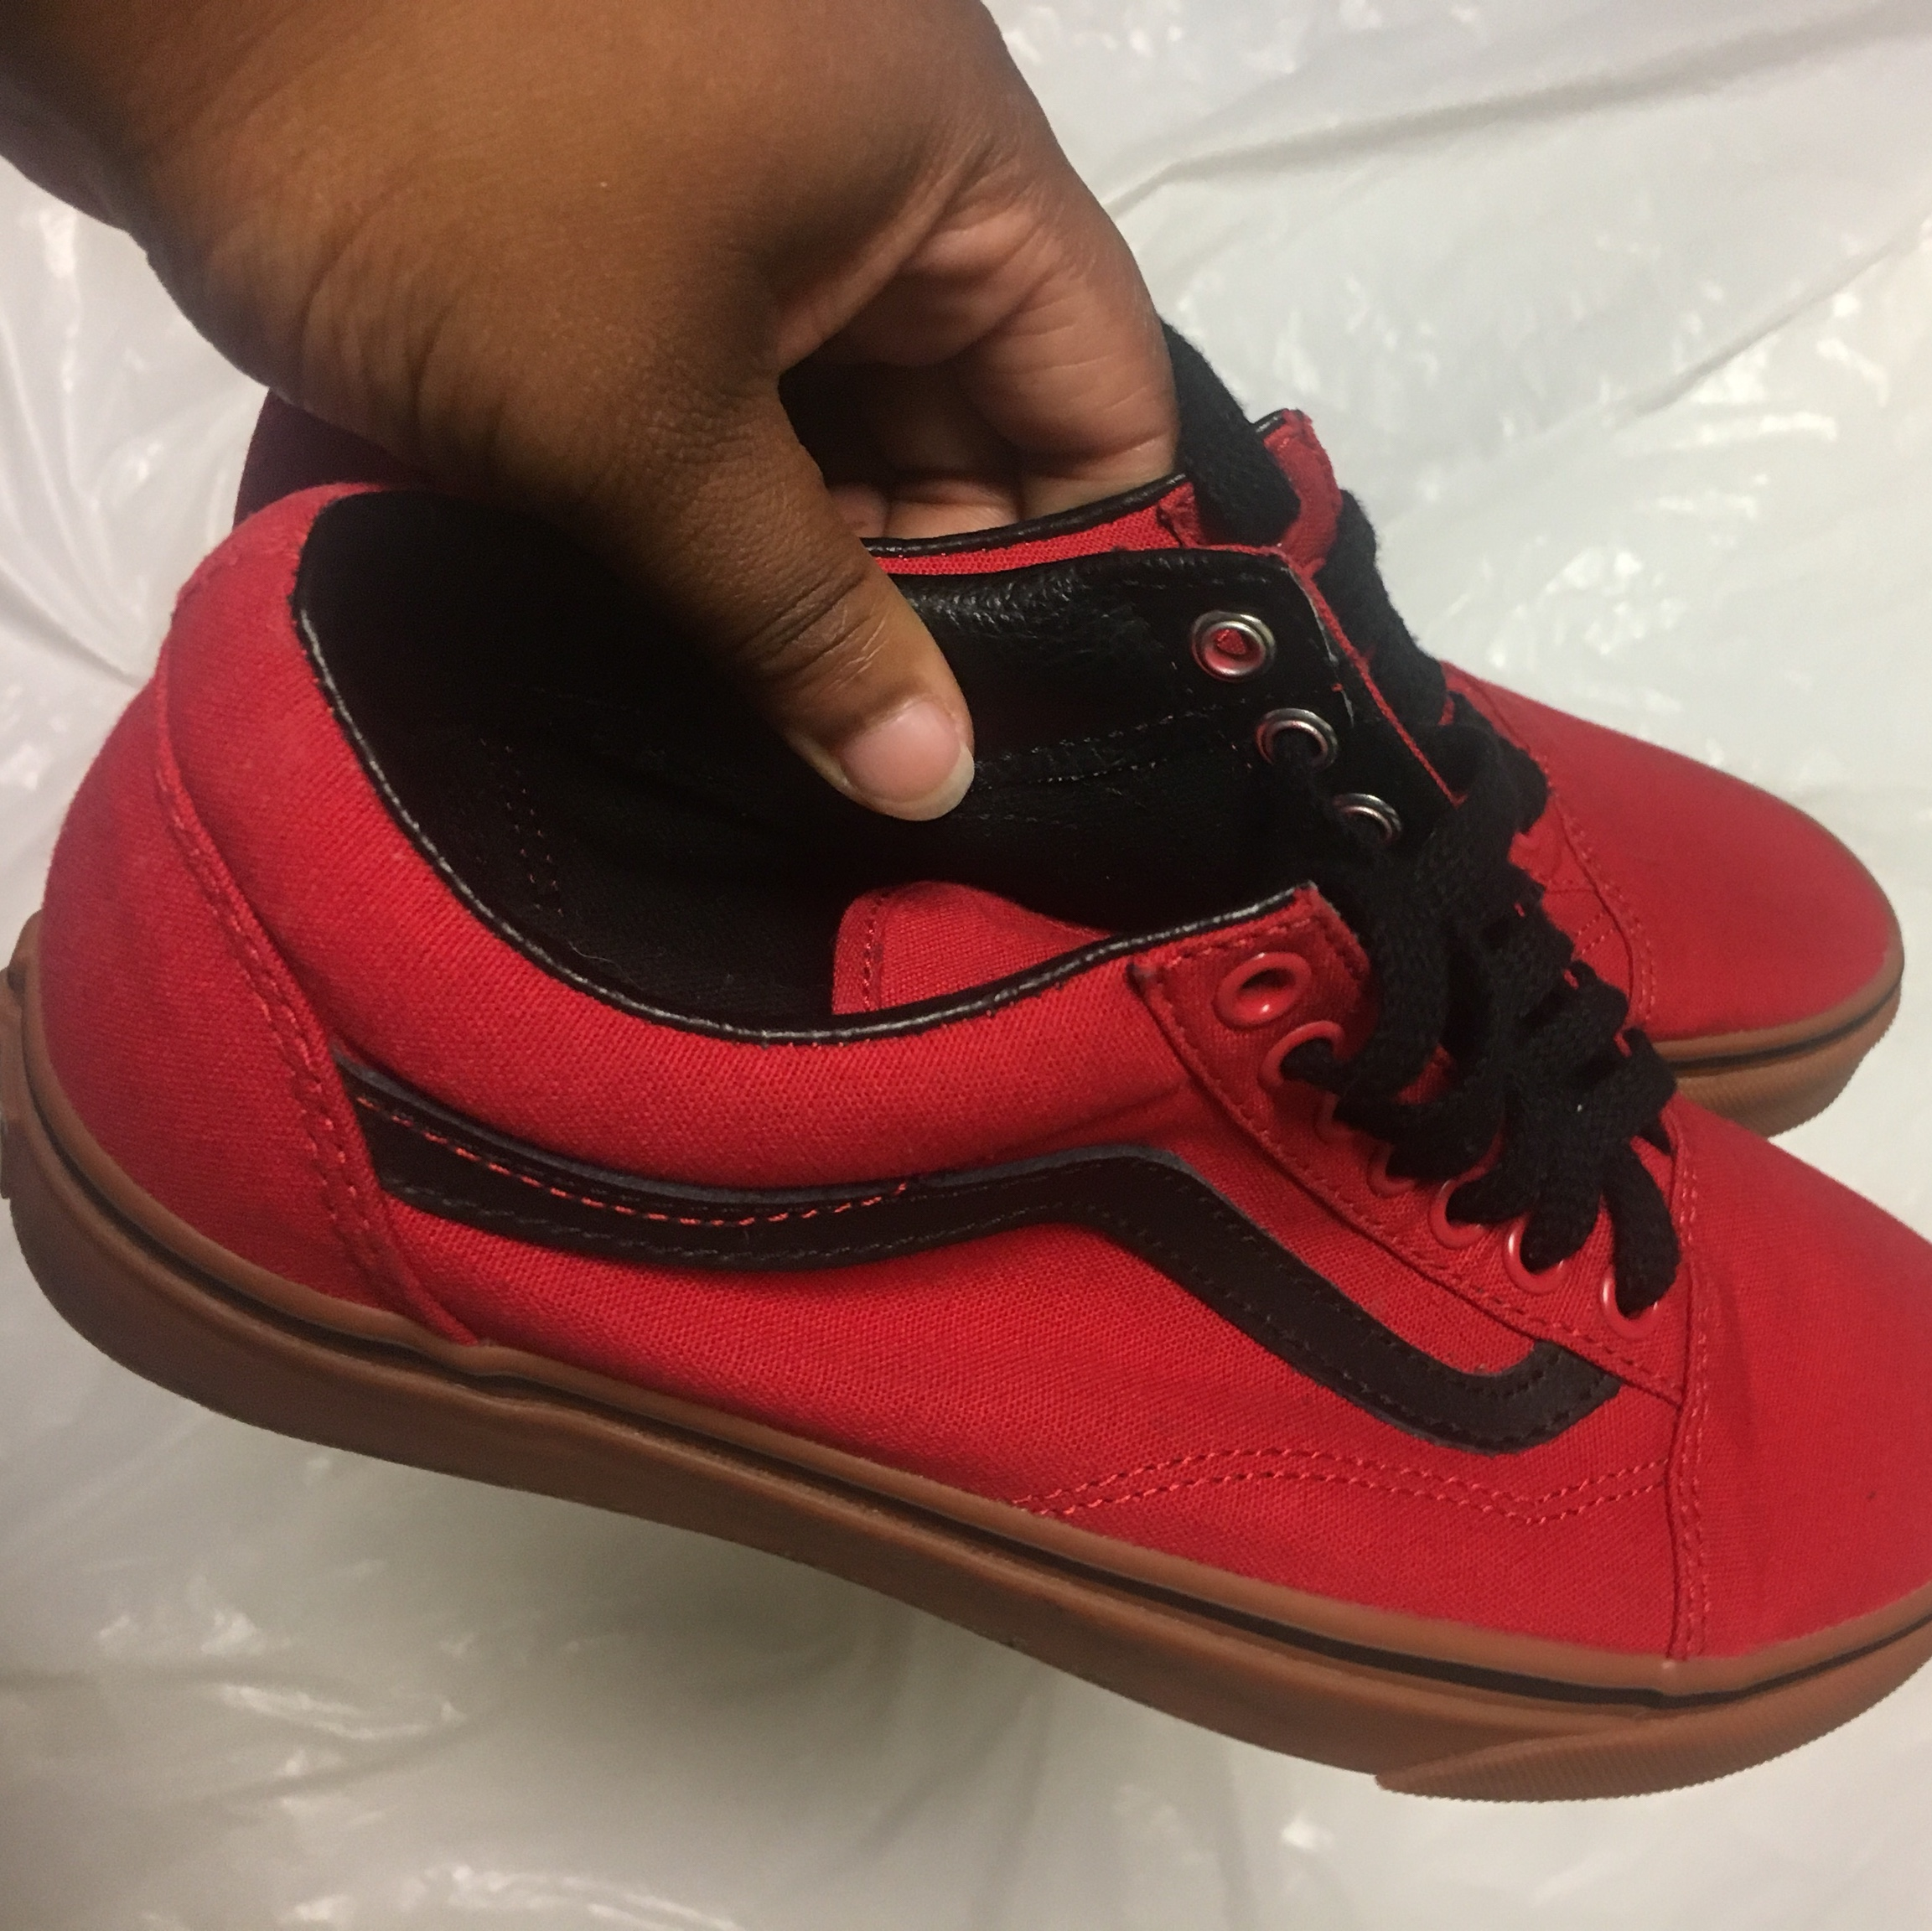 2e617af823b7 Vans off the wall Red gum bottom vans! Very good size - Depop